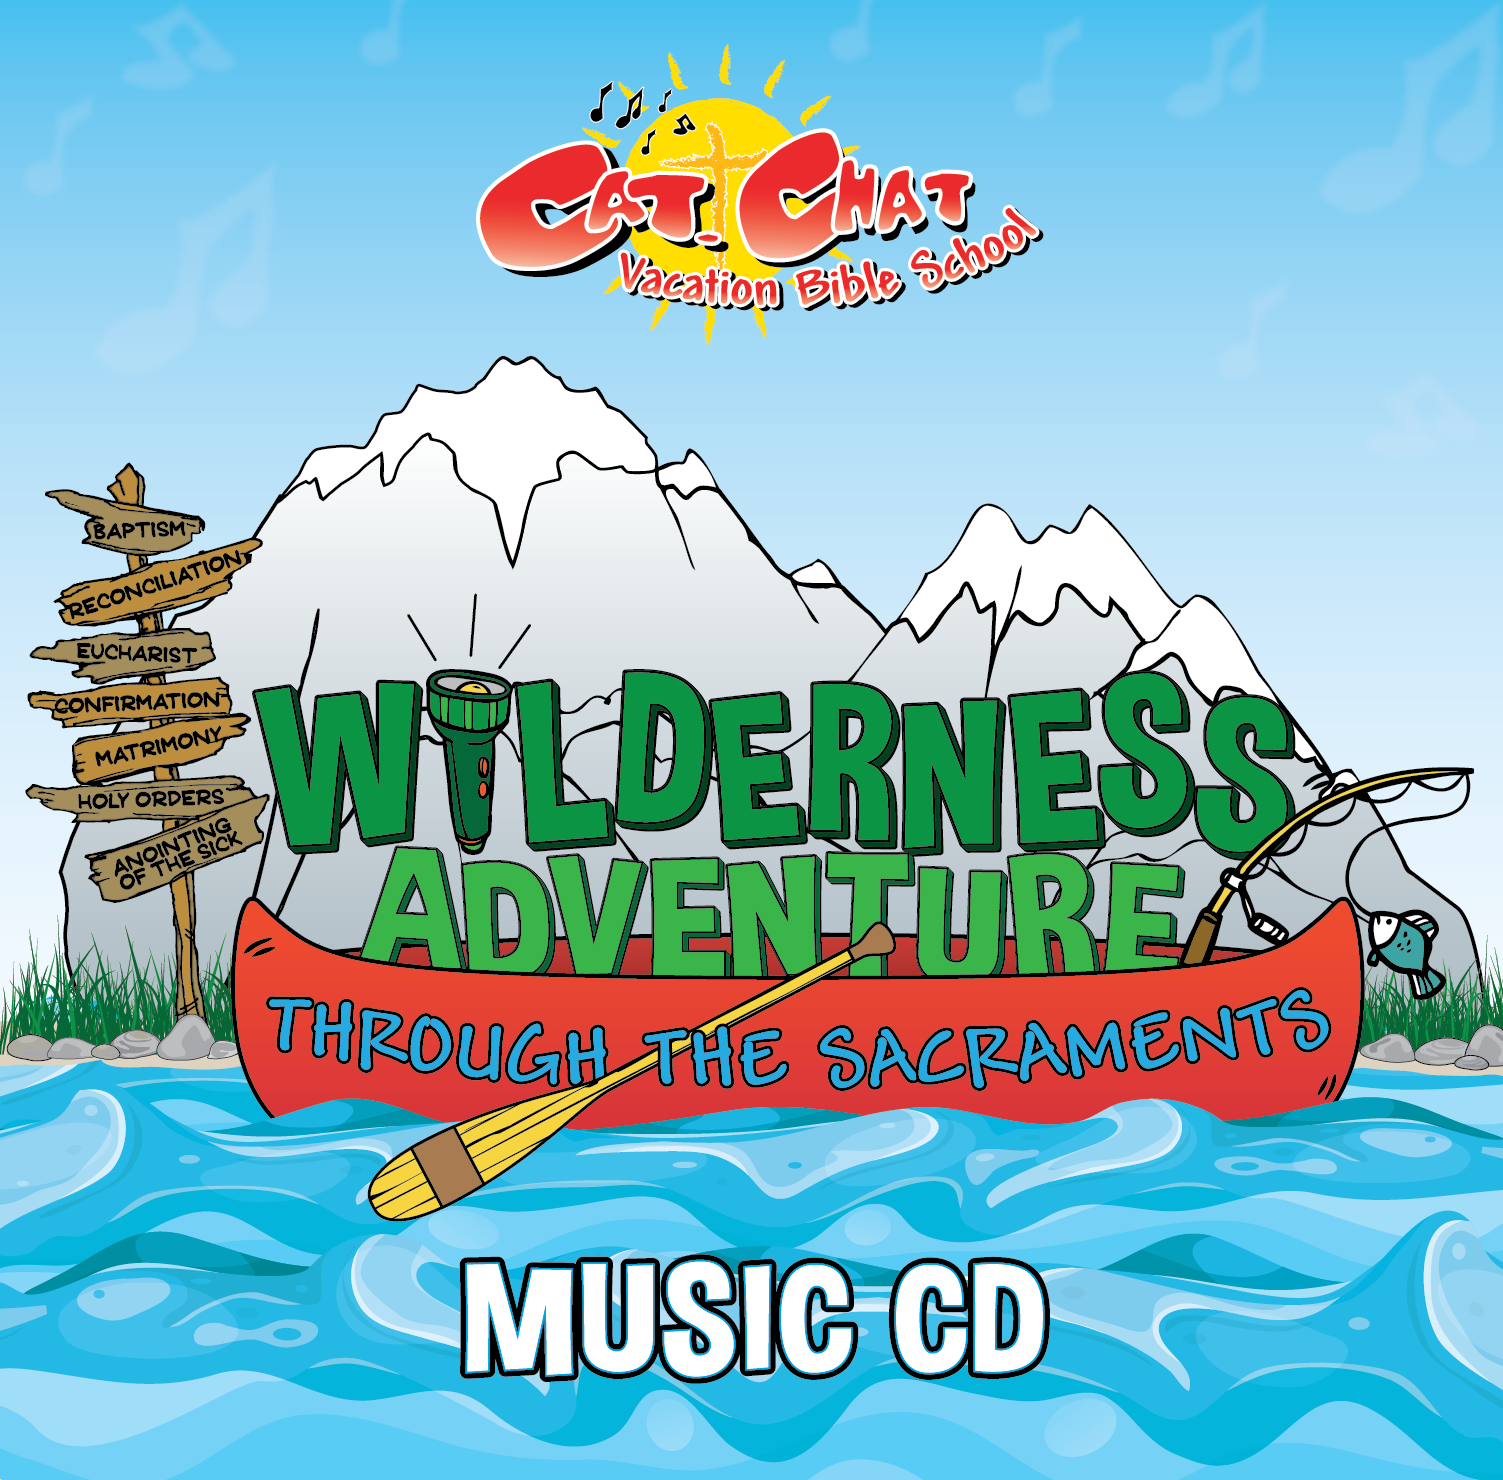 Wilderness Music CD 2 01